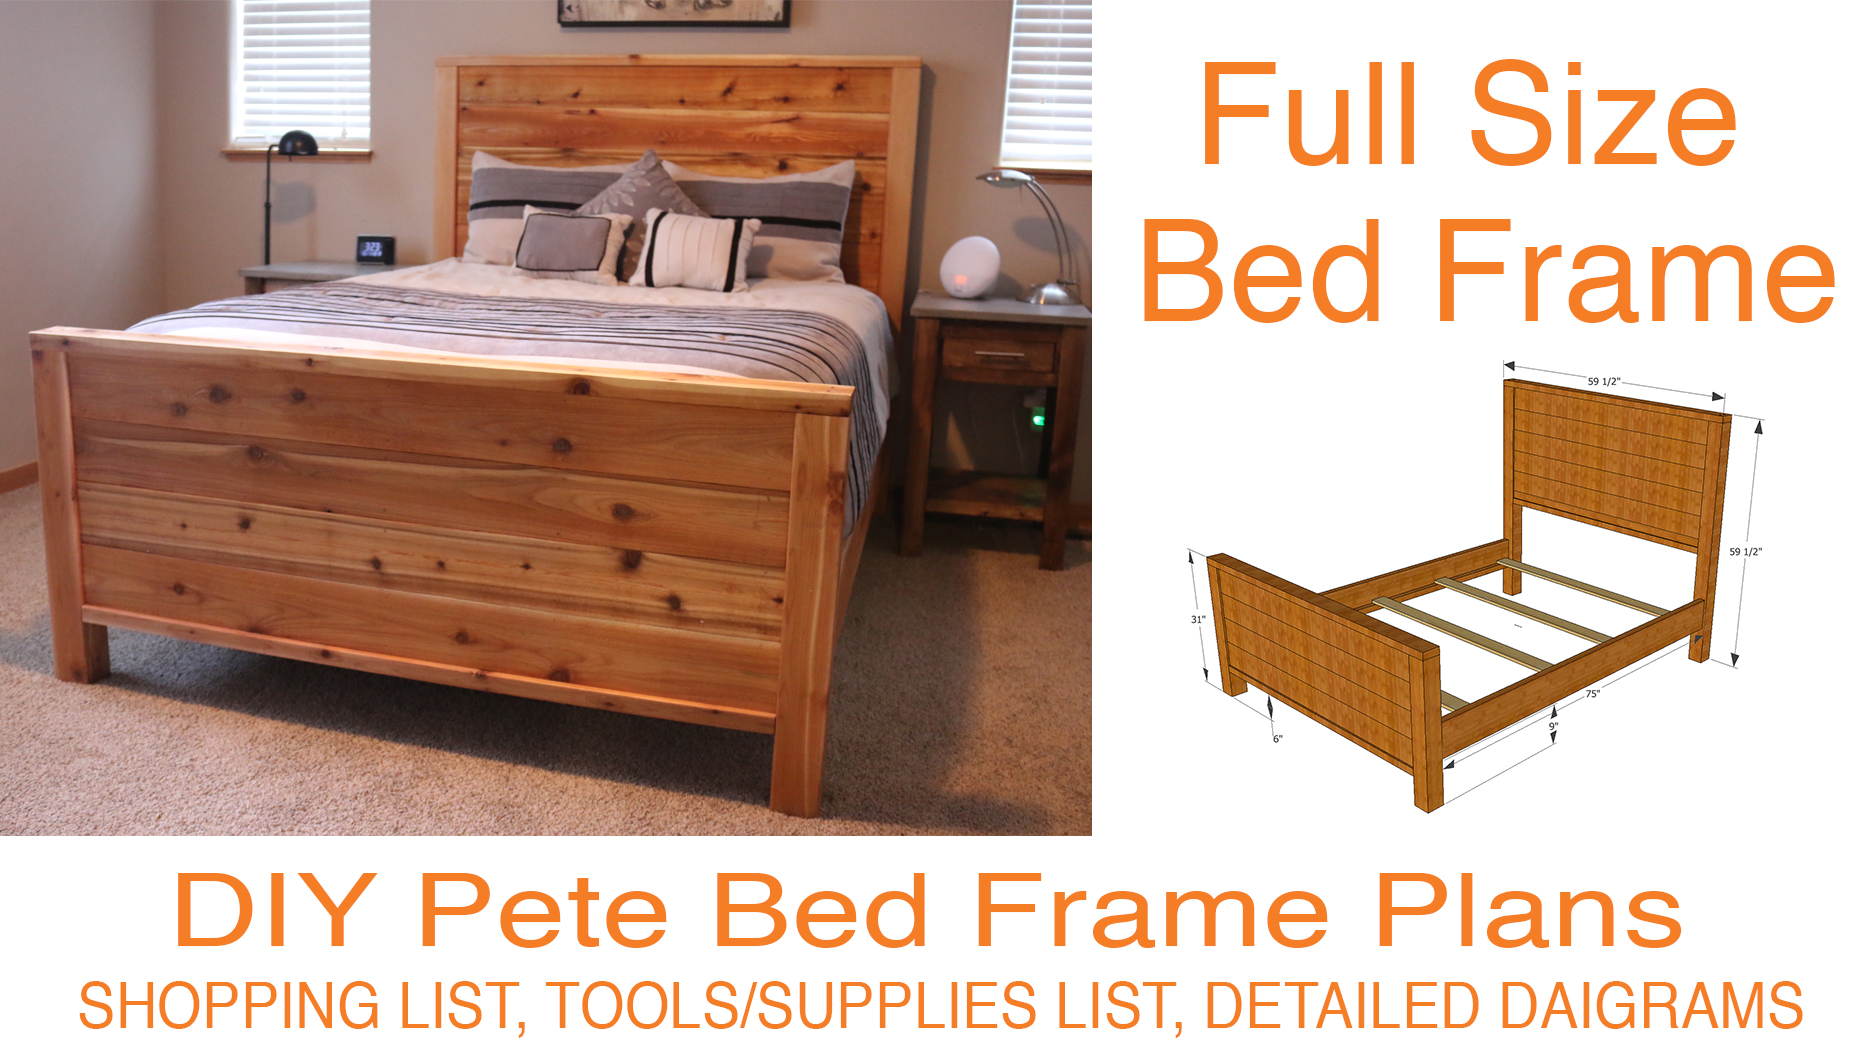 Full Bed Frame.Diy Bed Frame Plans How To Make A Bed Frame With Diy Pete